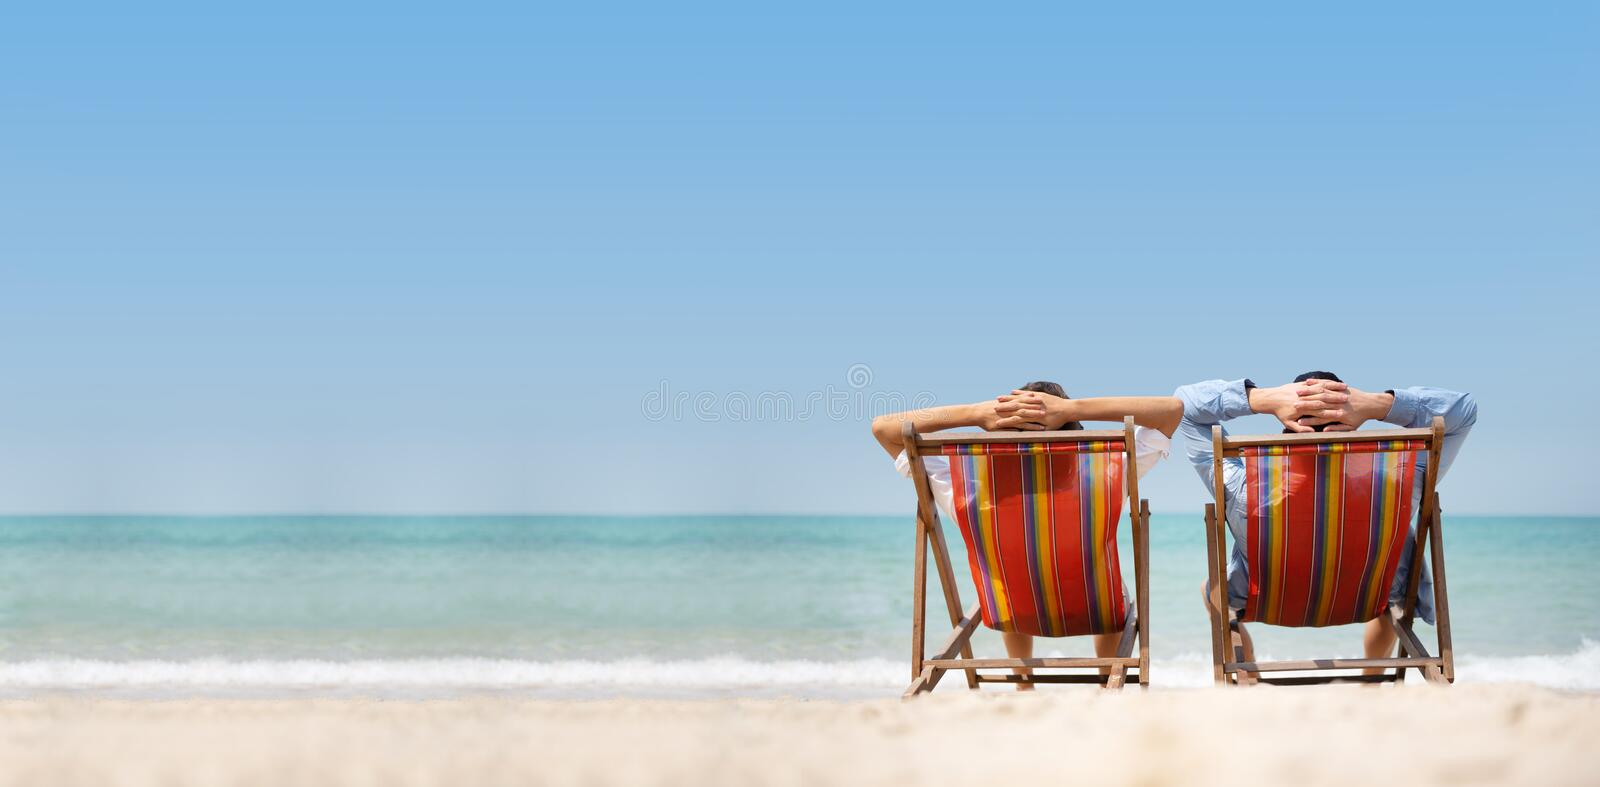 Couple relaxing on chair beach over sea background royalty free stock image